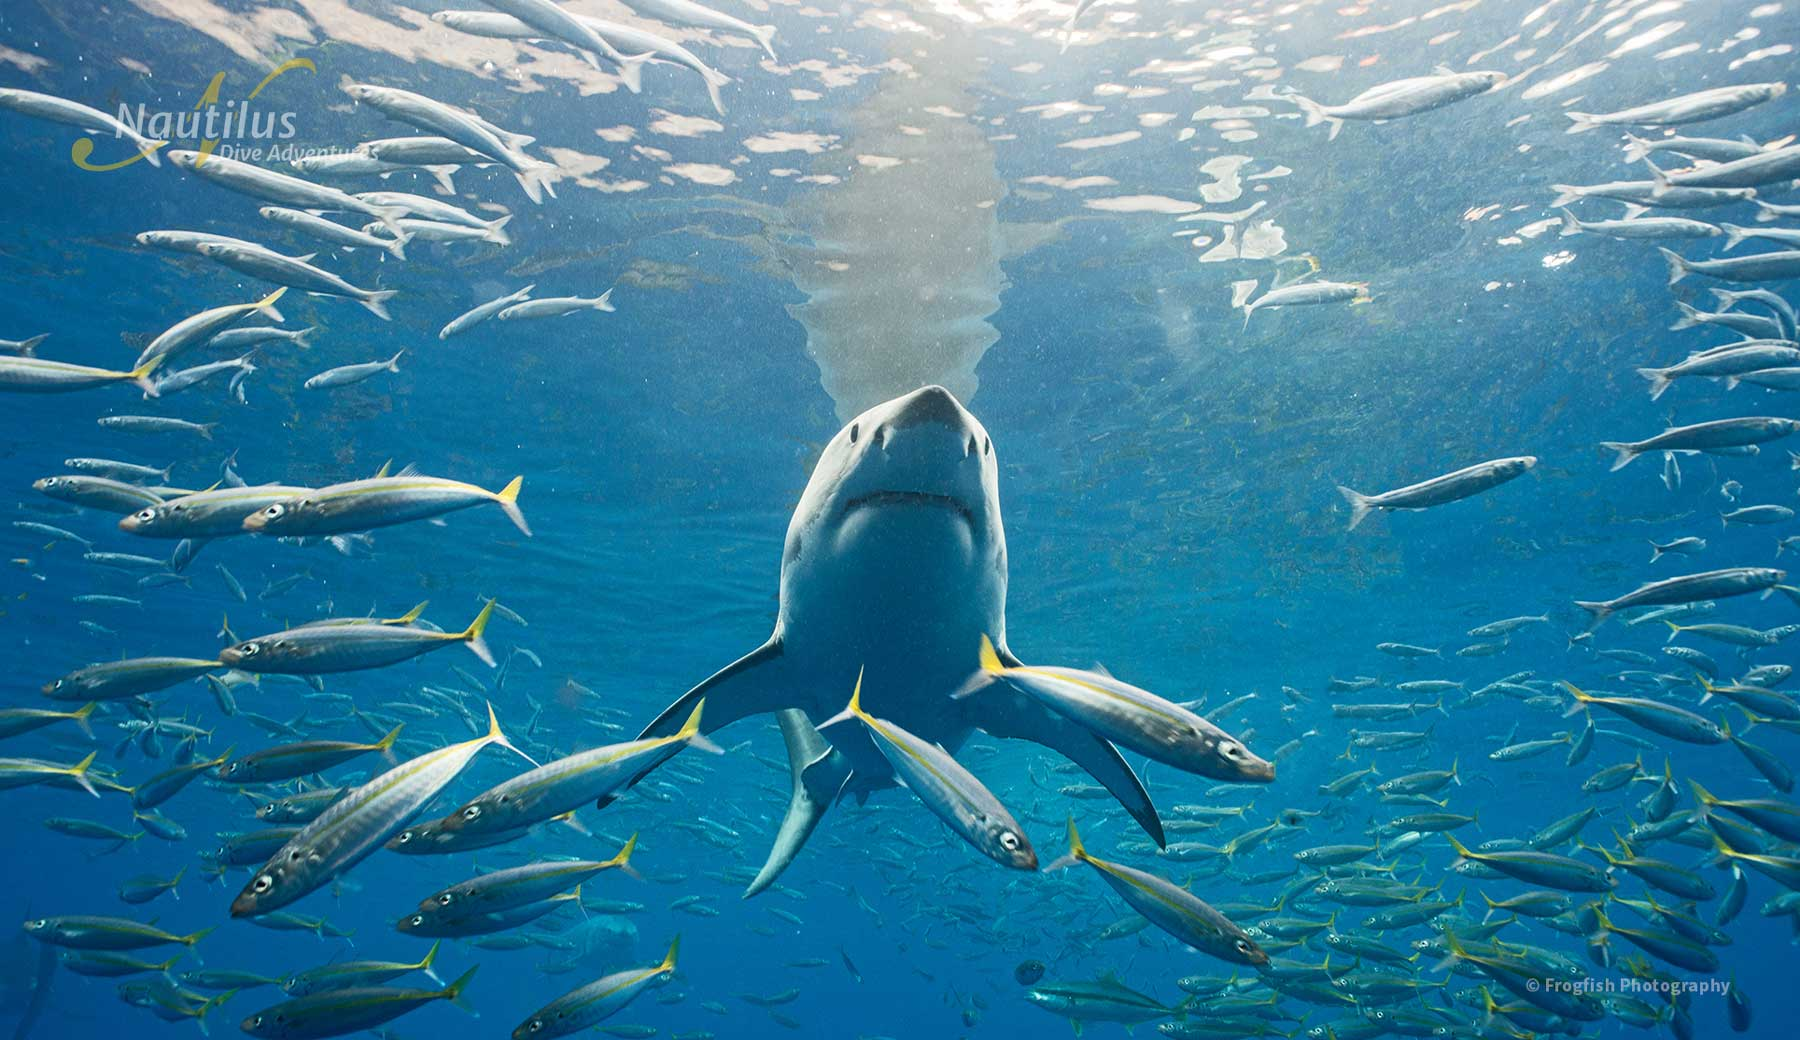 Great white sharks and fishes at Guadalupe